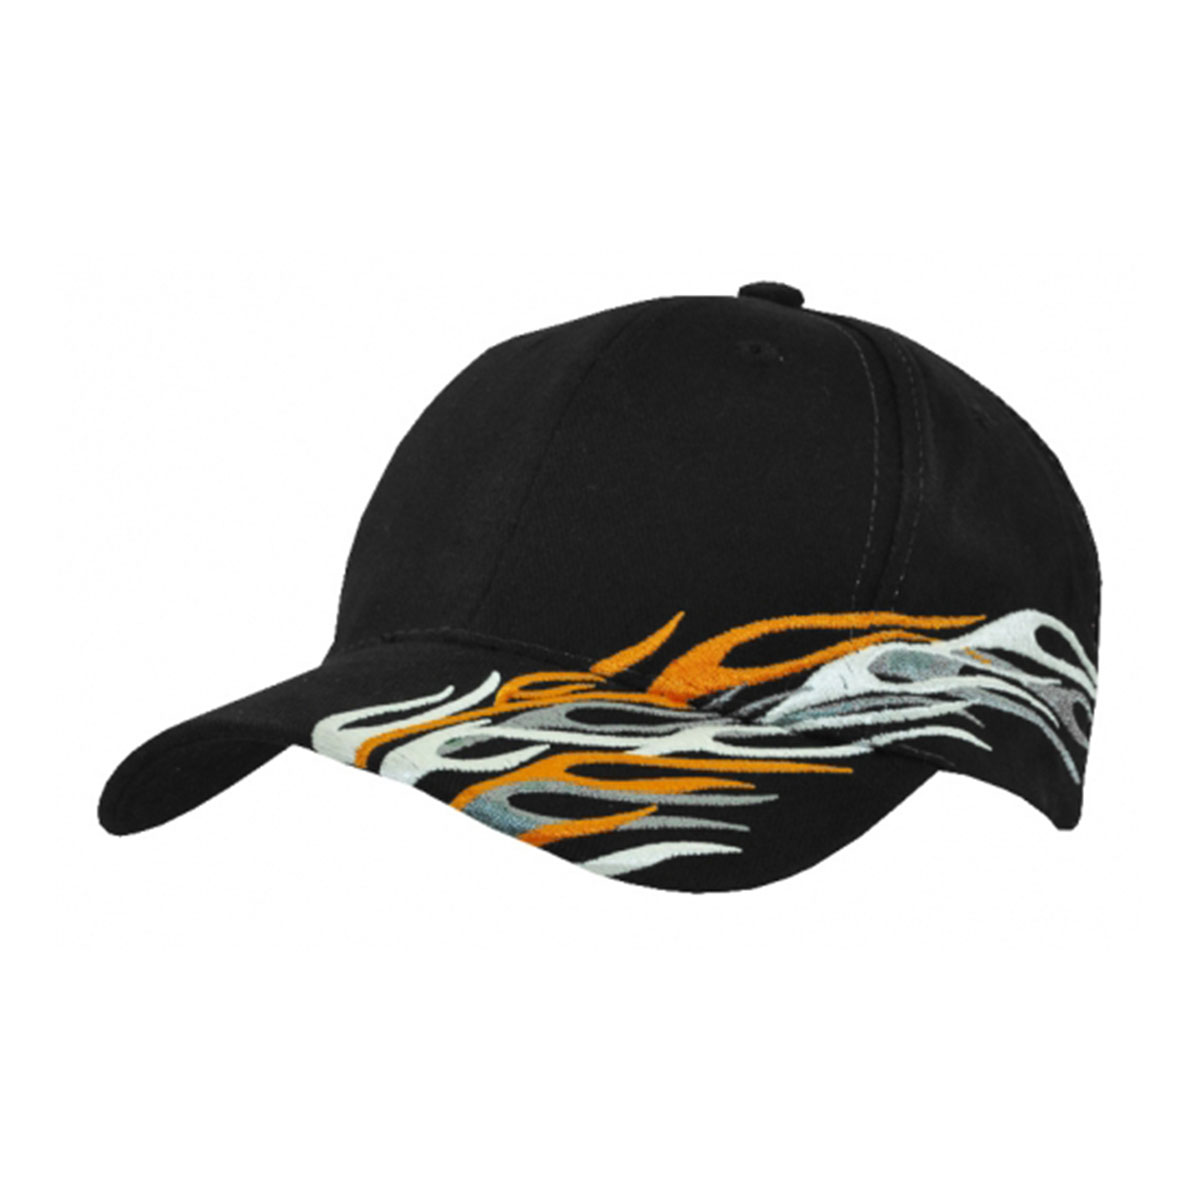 Cyclone Cap-Black / White / Grey / Orange